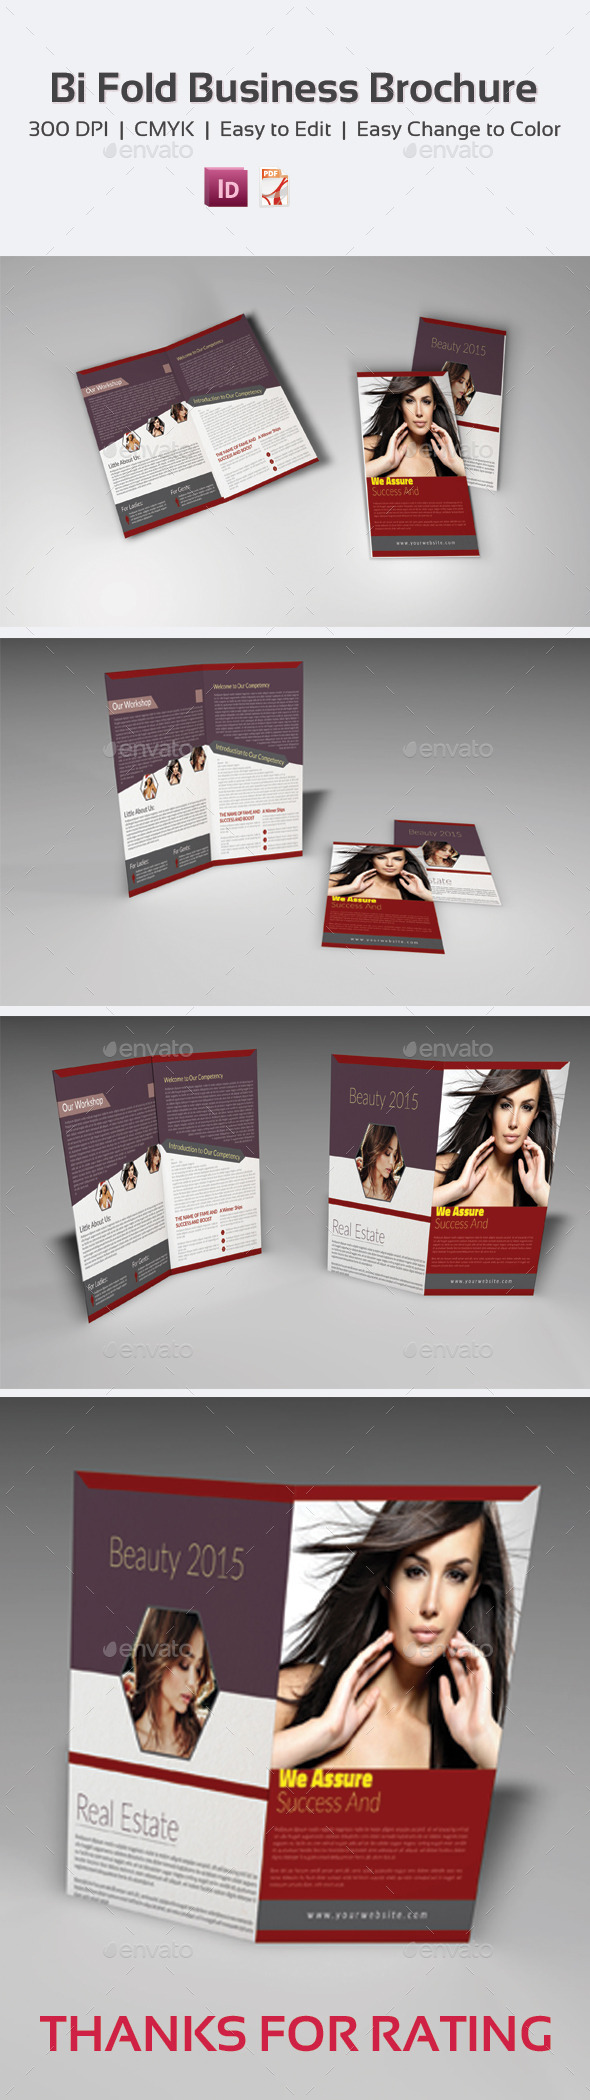 GraphicRiver Bi Fold Business Brochure 9660807